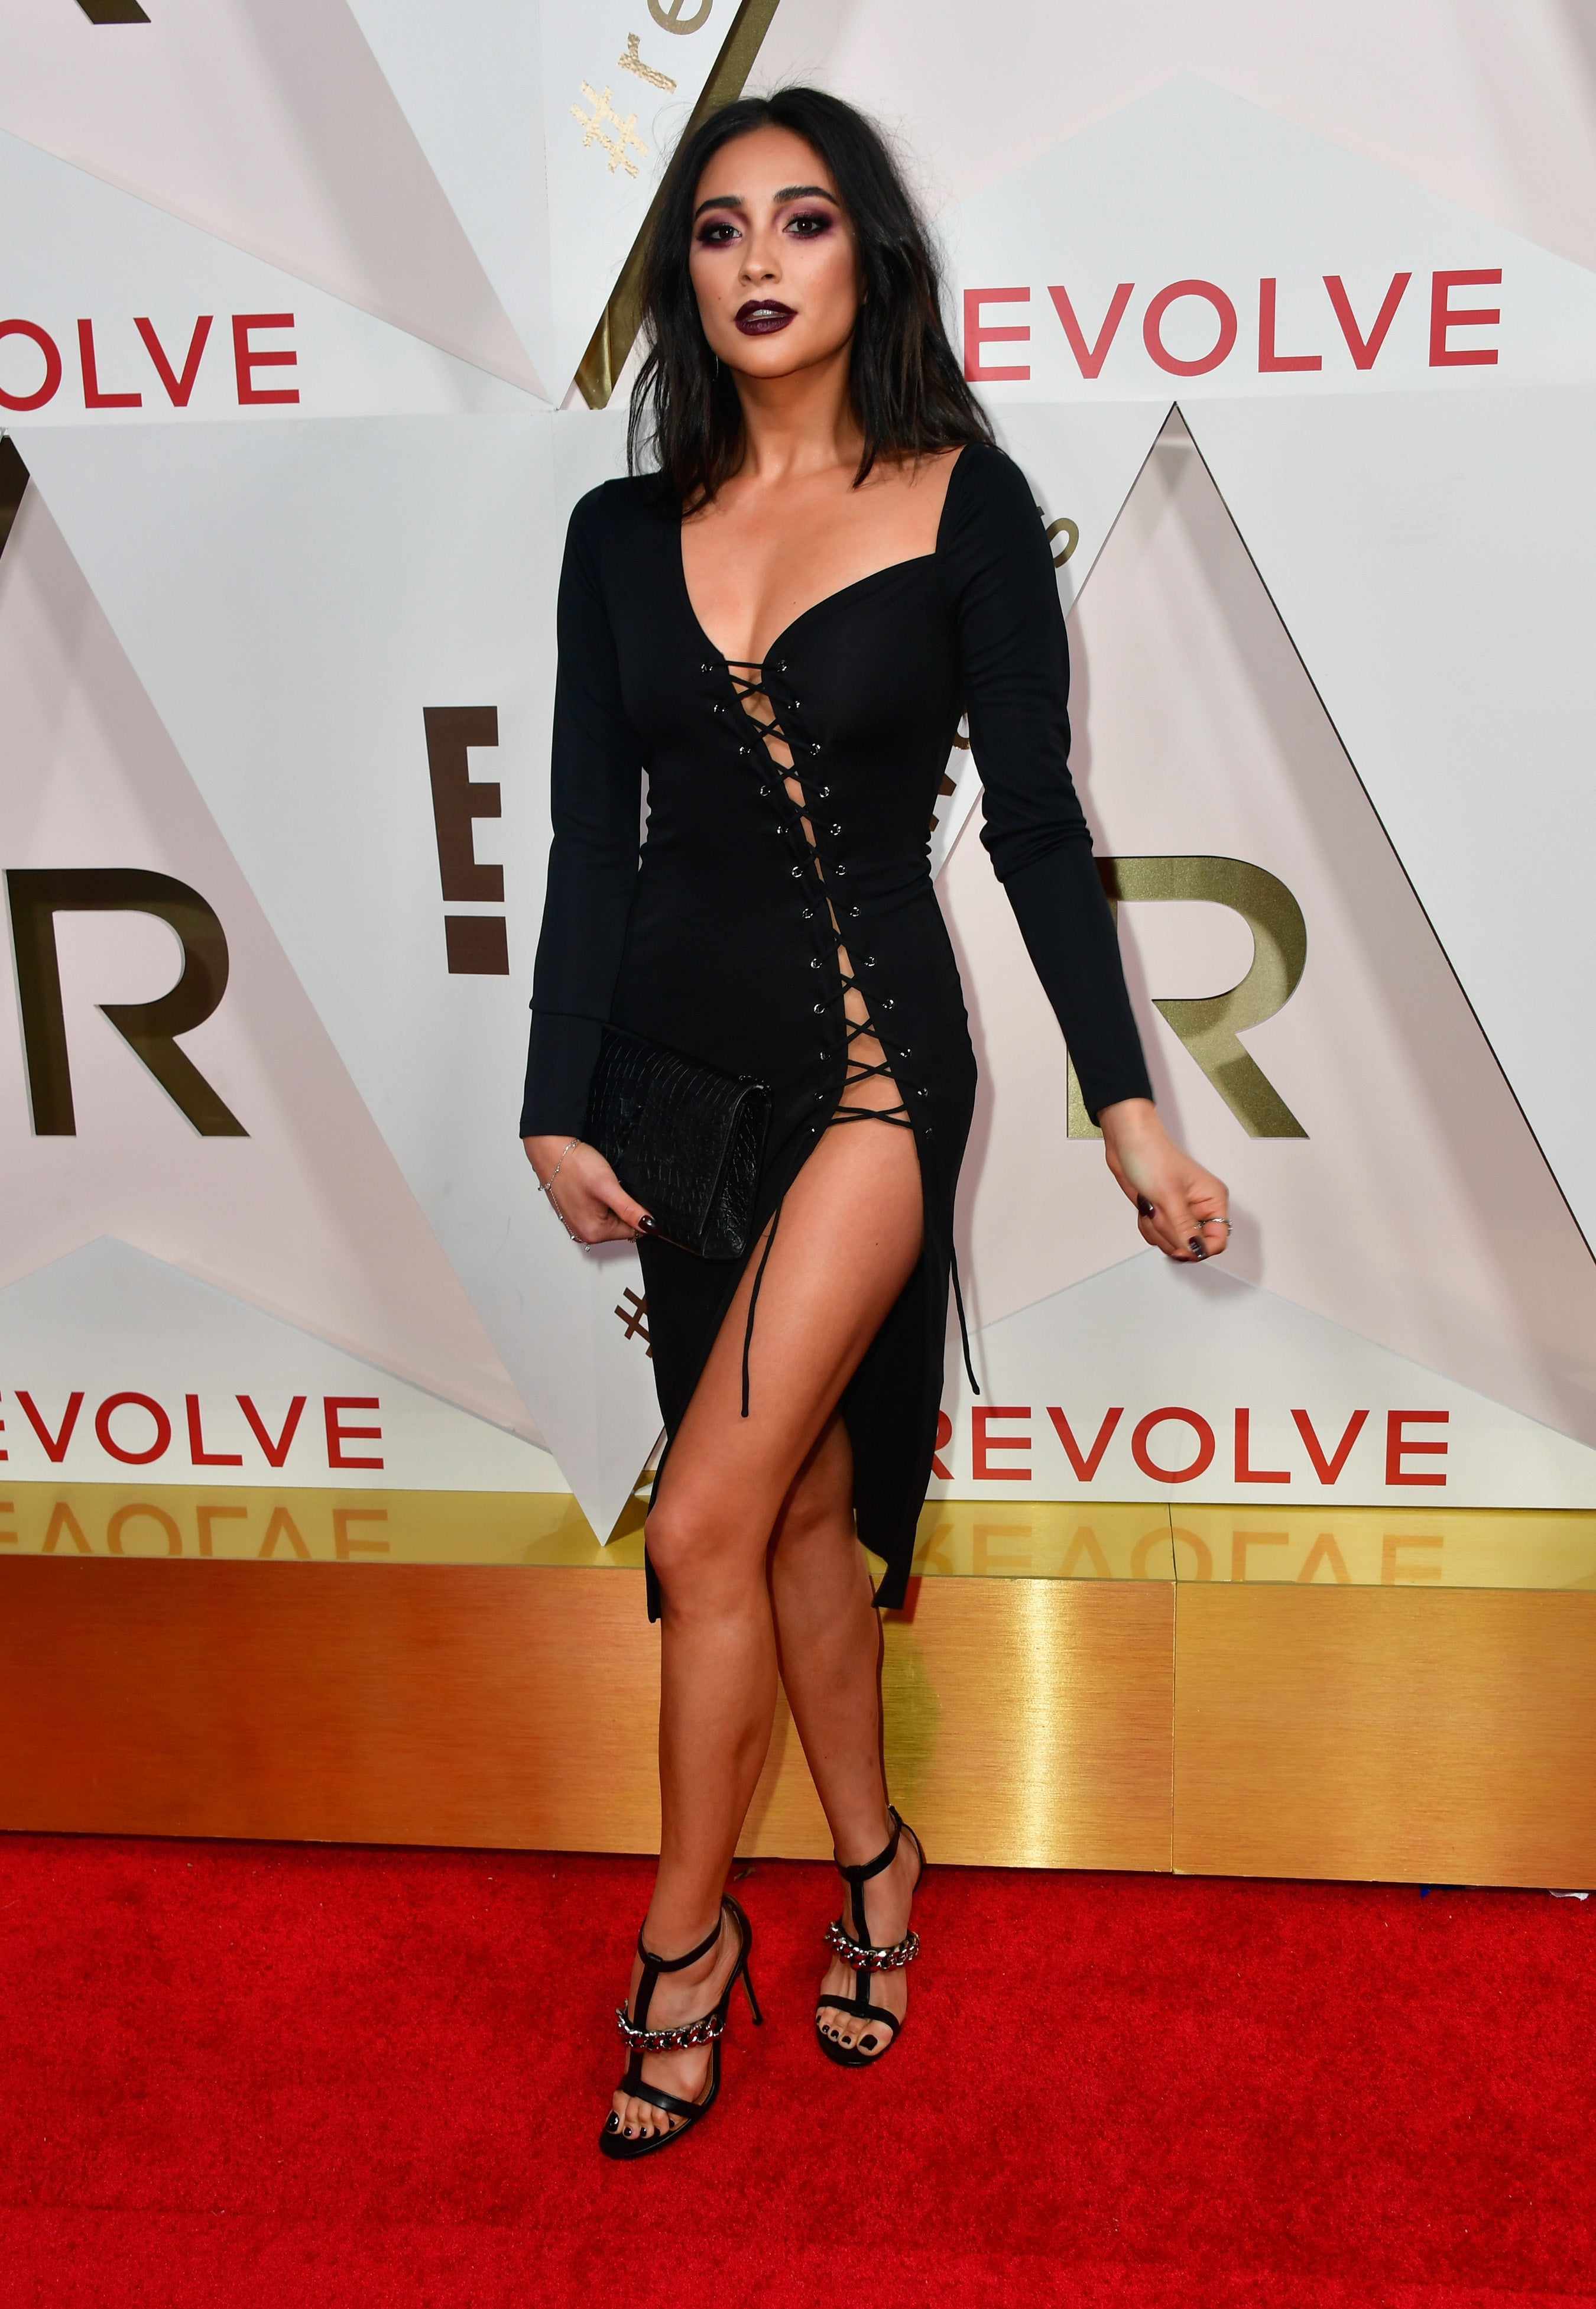 Shay Mitchell at #revolveawards